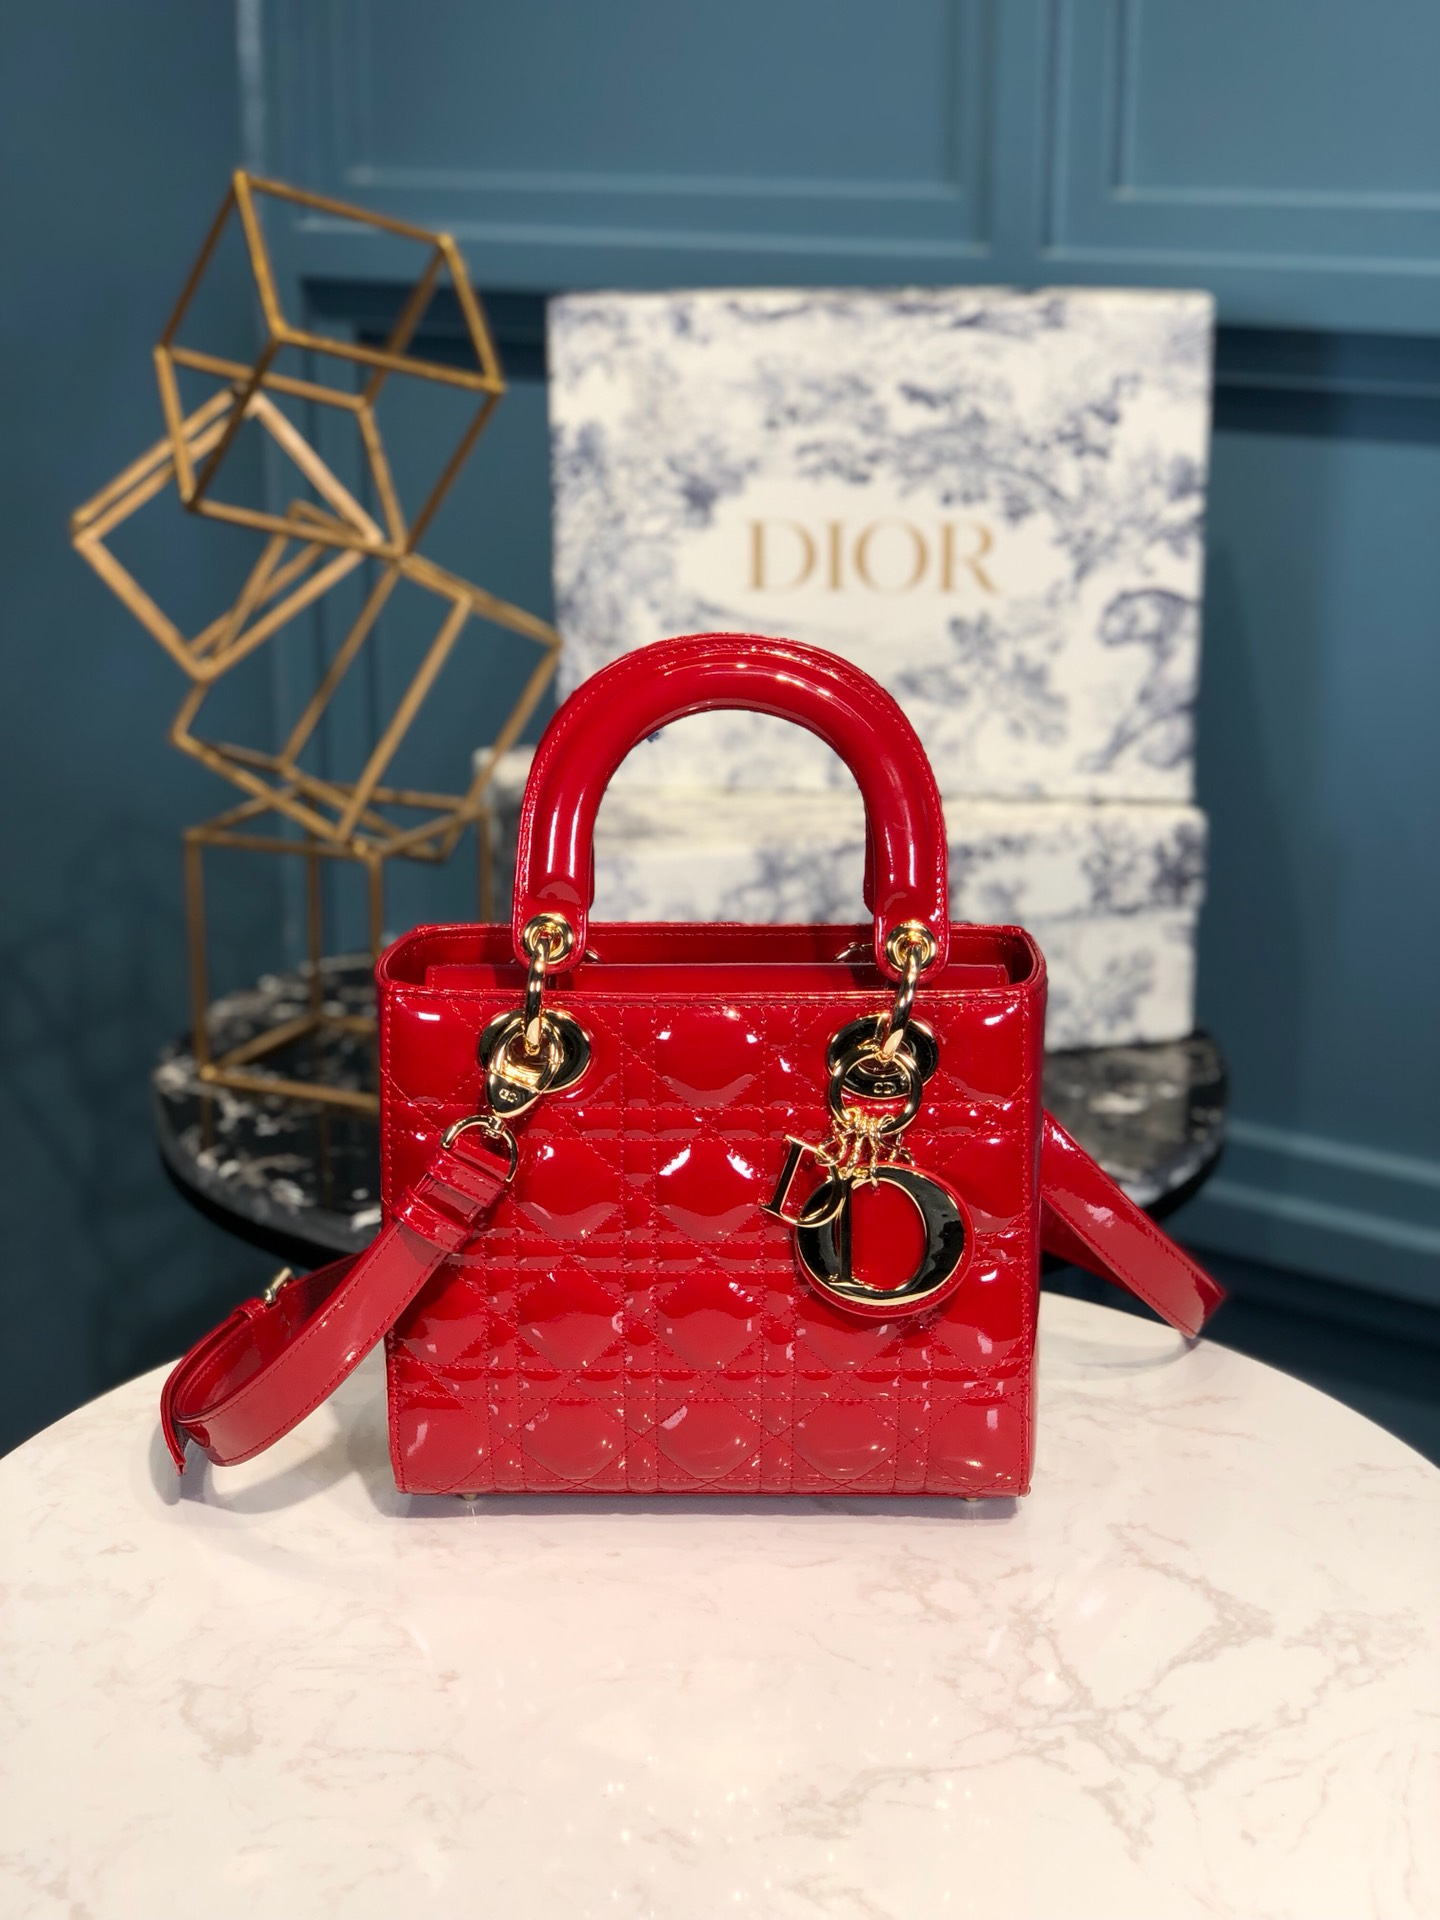 Replica Lady Dior Calfskin Bag Adjustable Shoulder Strap With Gold-Tone Metal Red